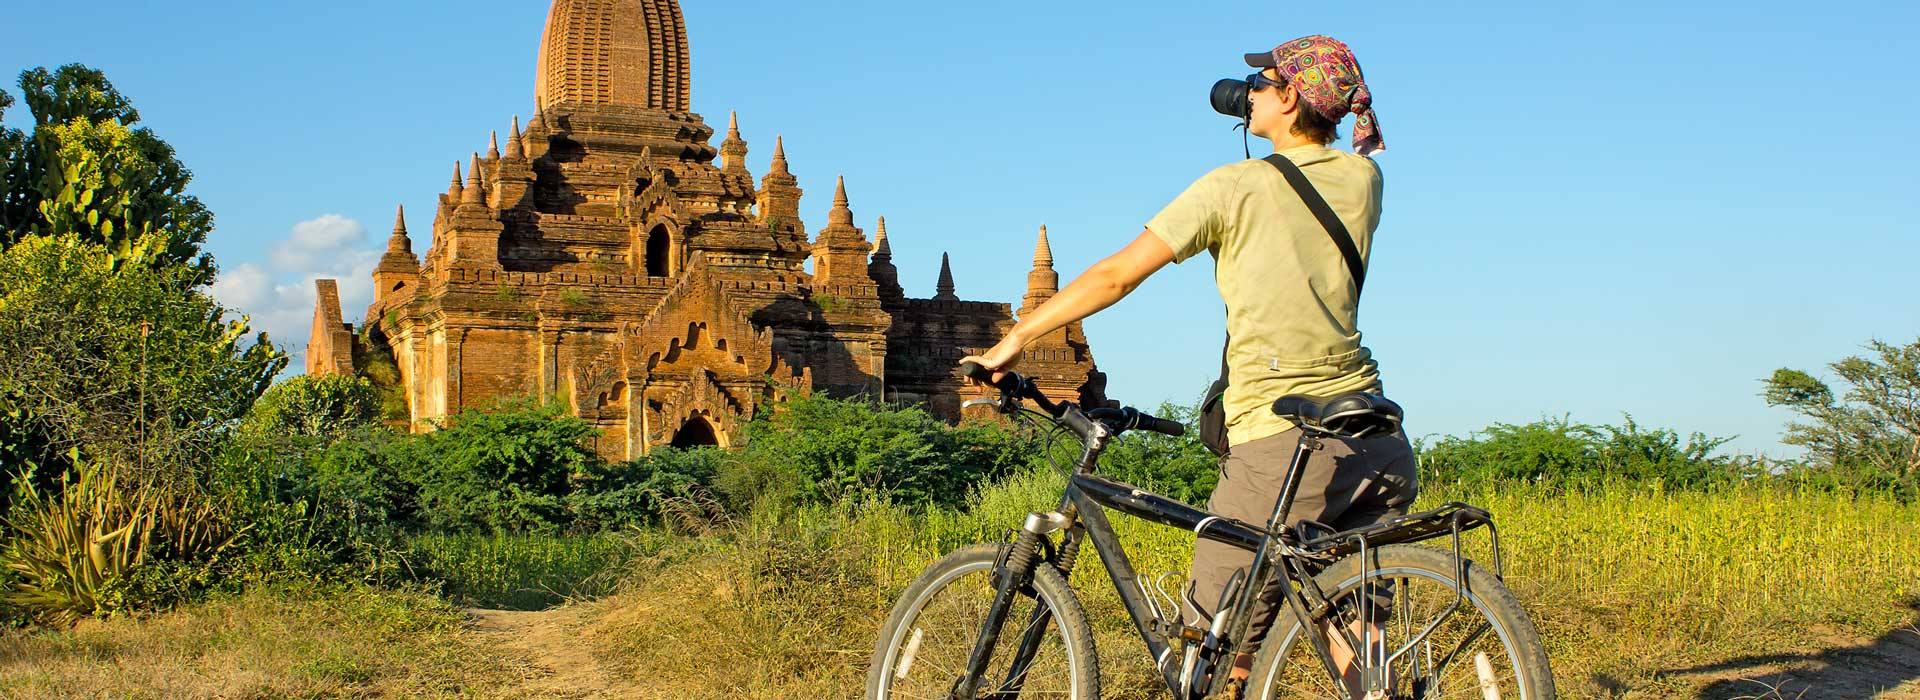 bagan cycling tour - myanmar cycling holidays - burma cycling